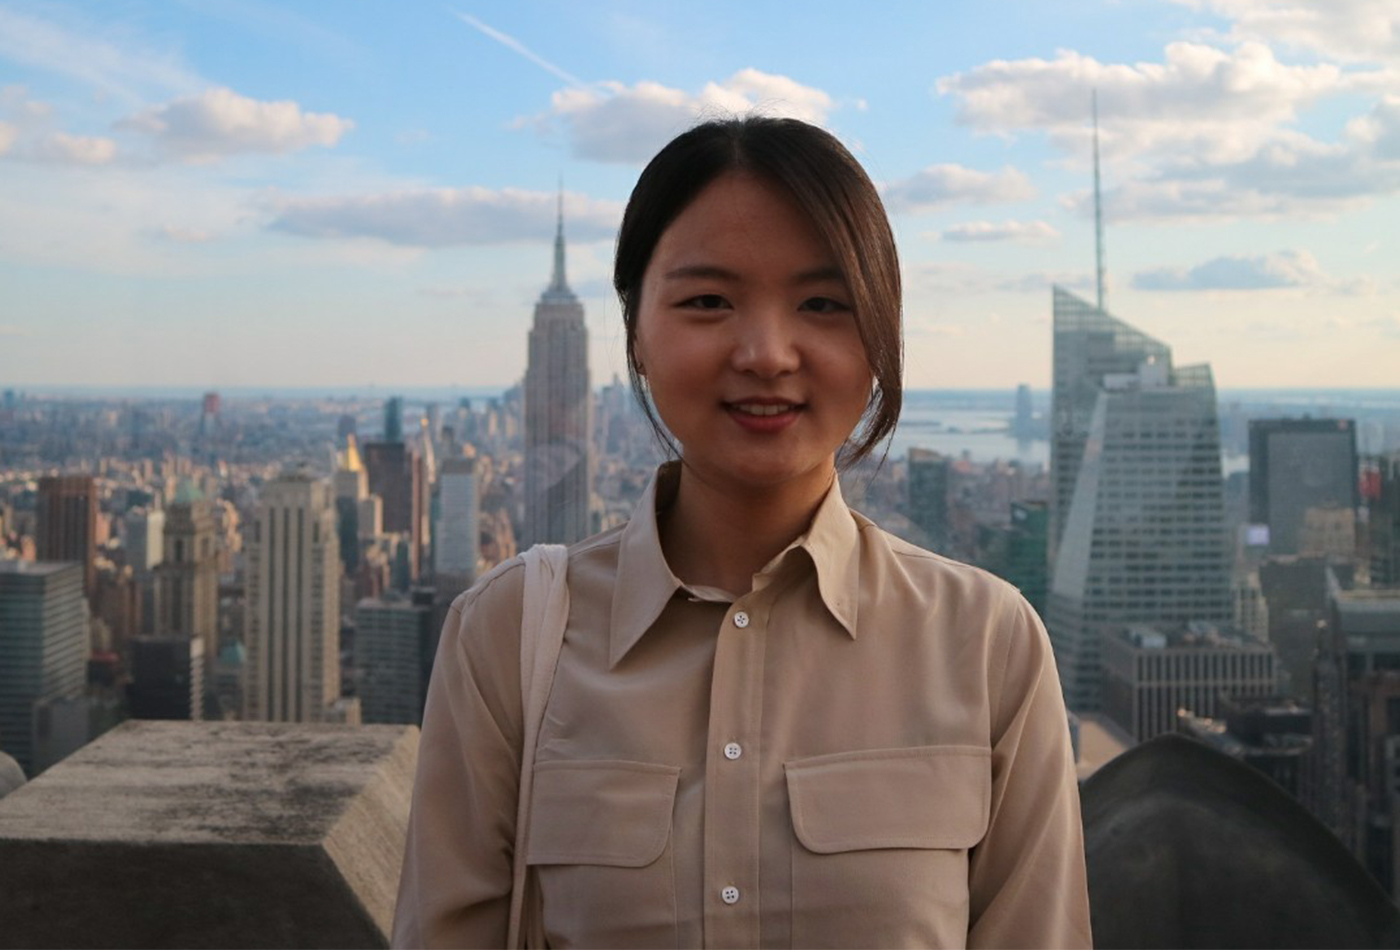 A young woman stands before the New York City skyline.